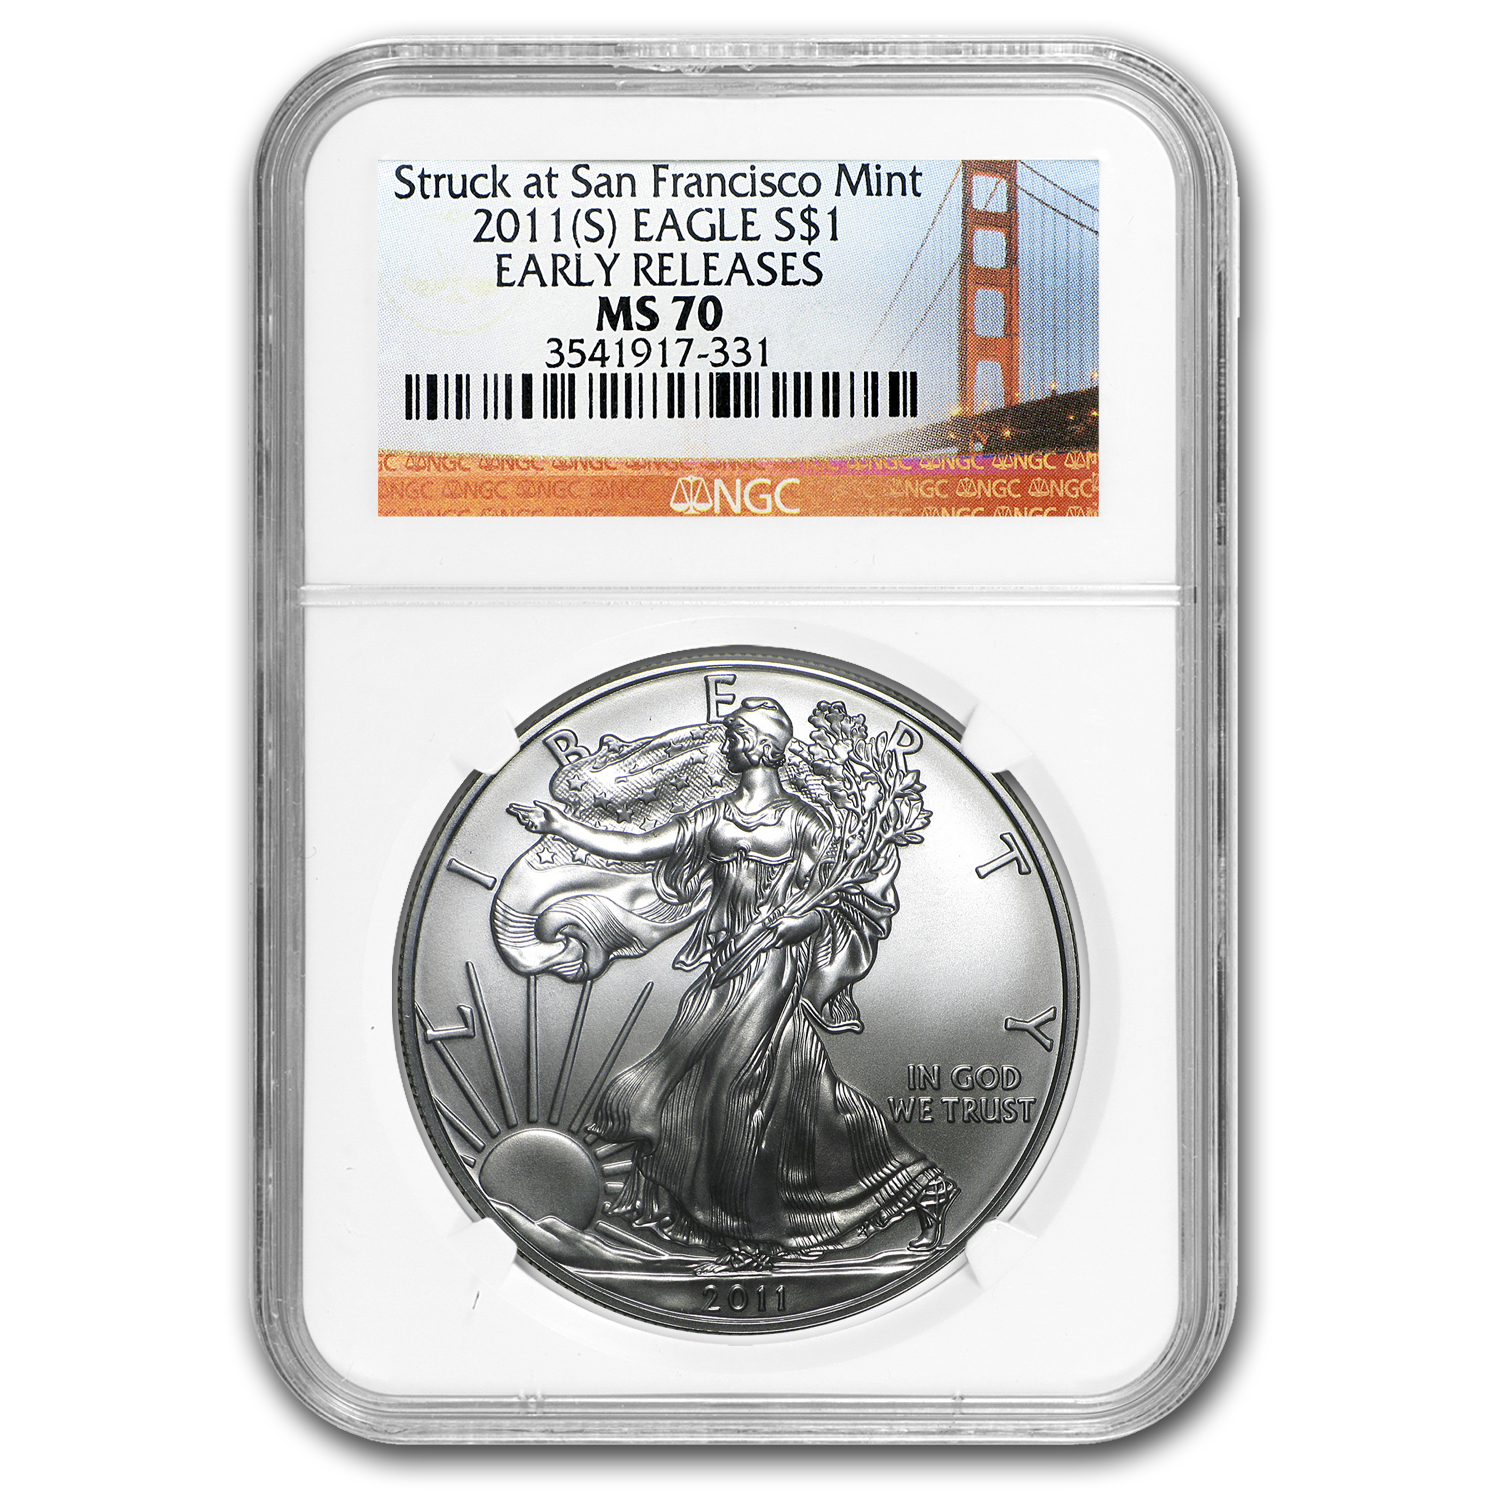 2011 (S) Silver American Eagle - MS-70 NGC - Early Releases